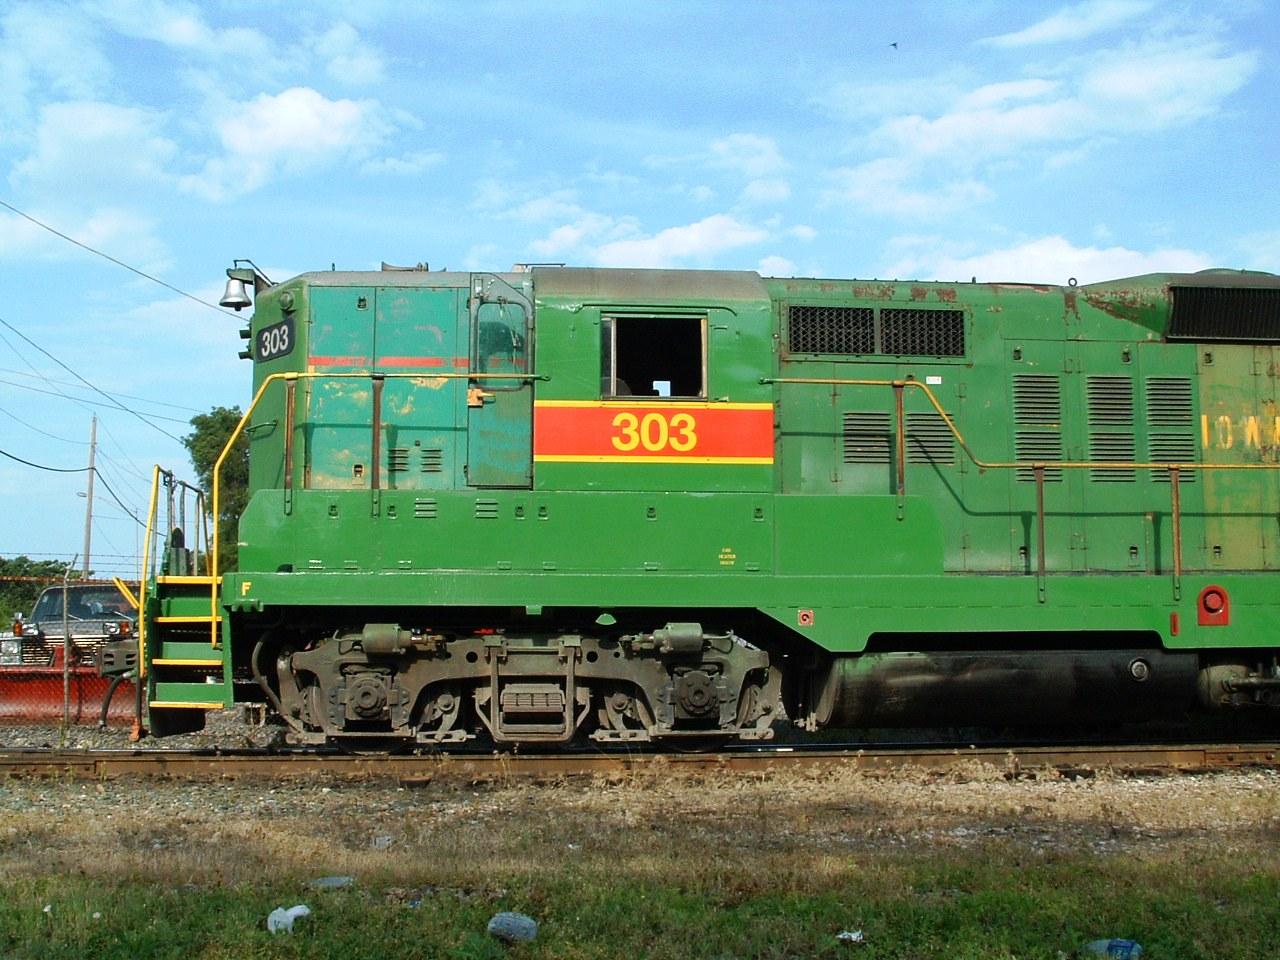 303 side cab/nose, Blue Island, IL 06/08/04